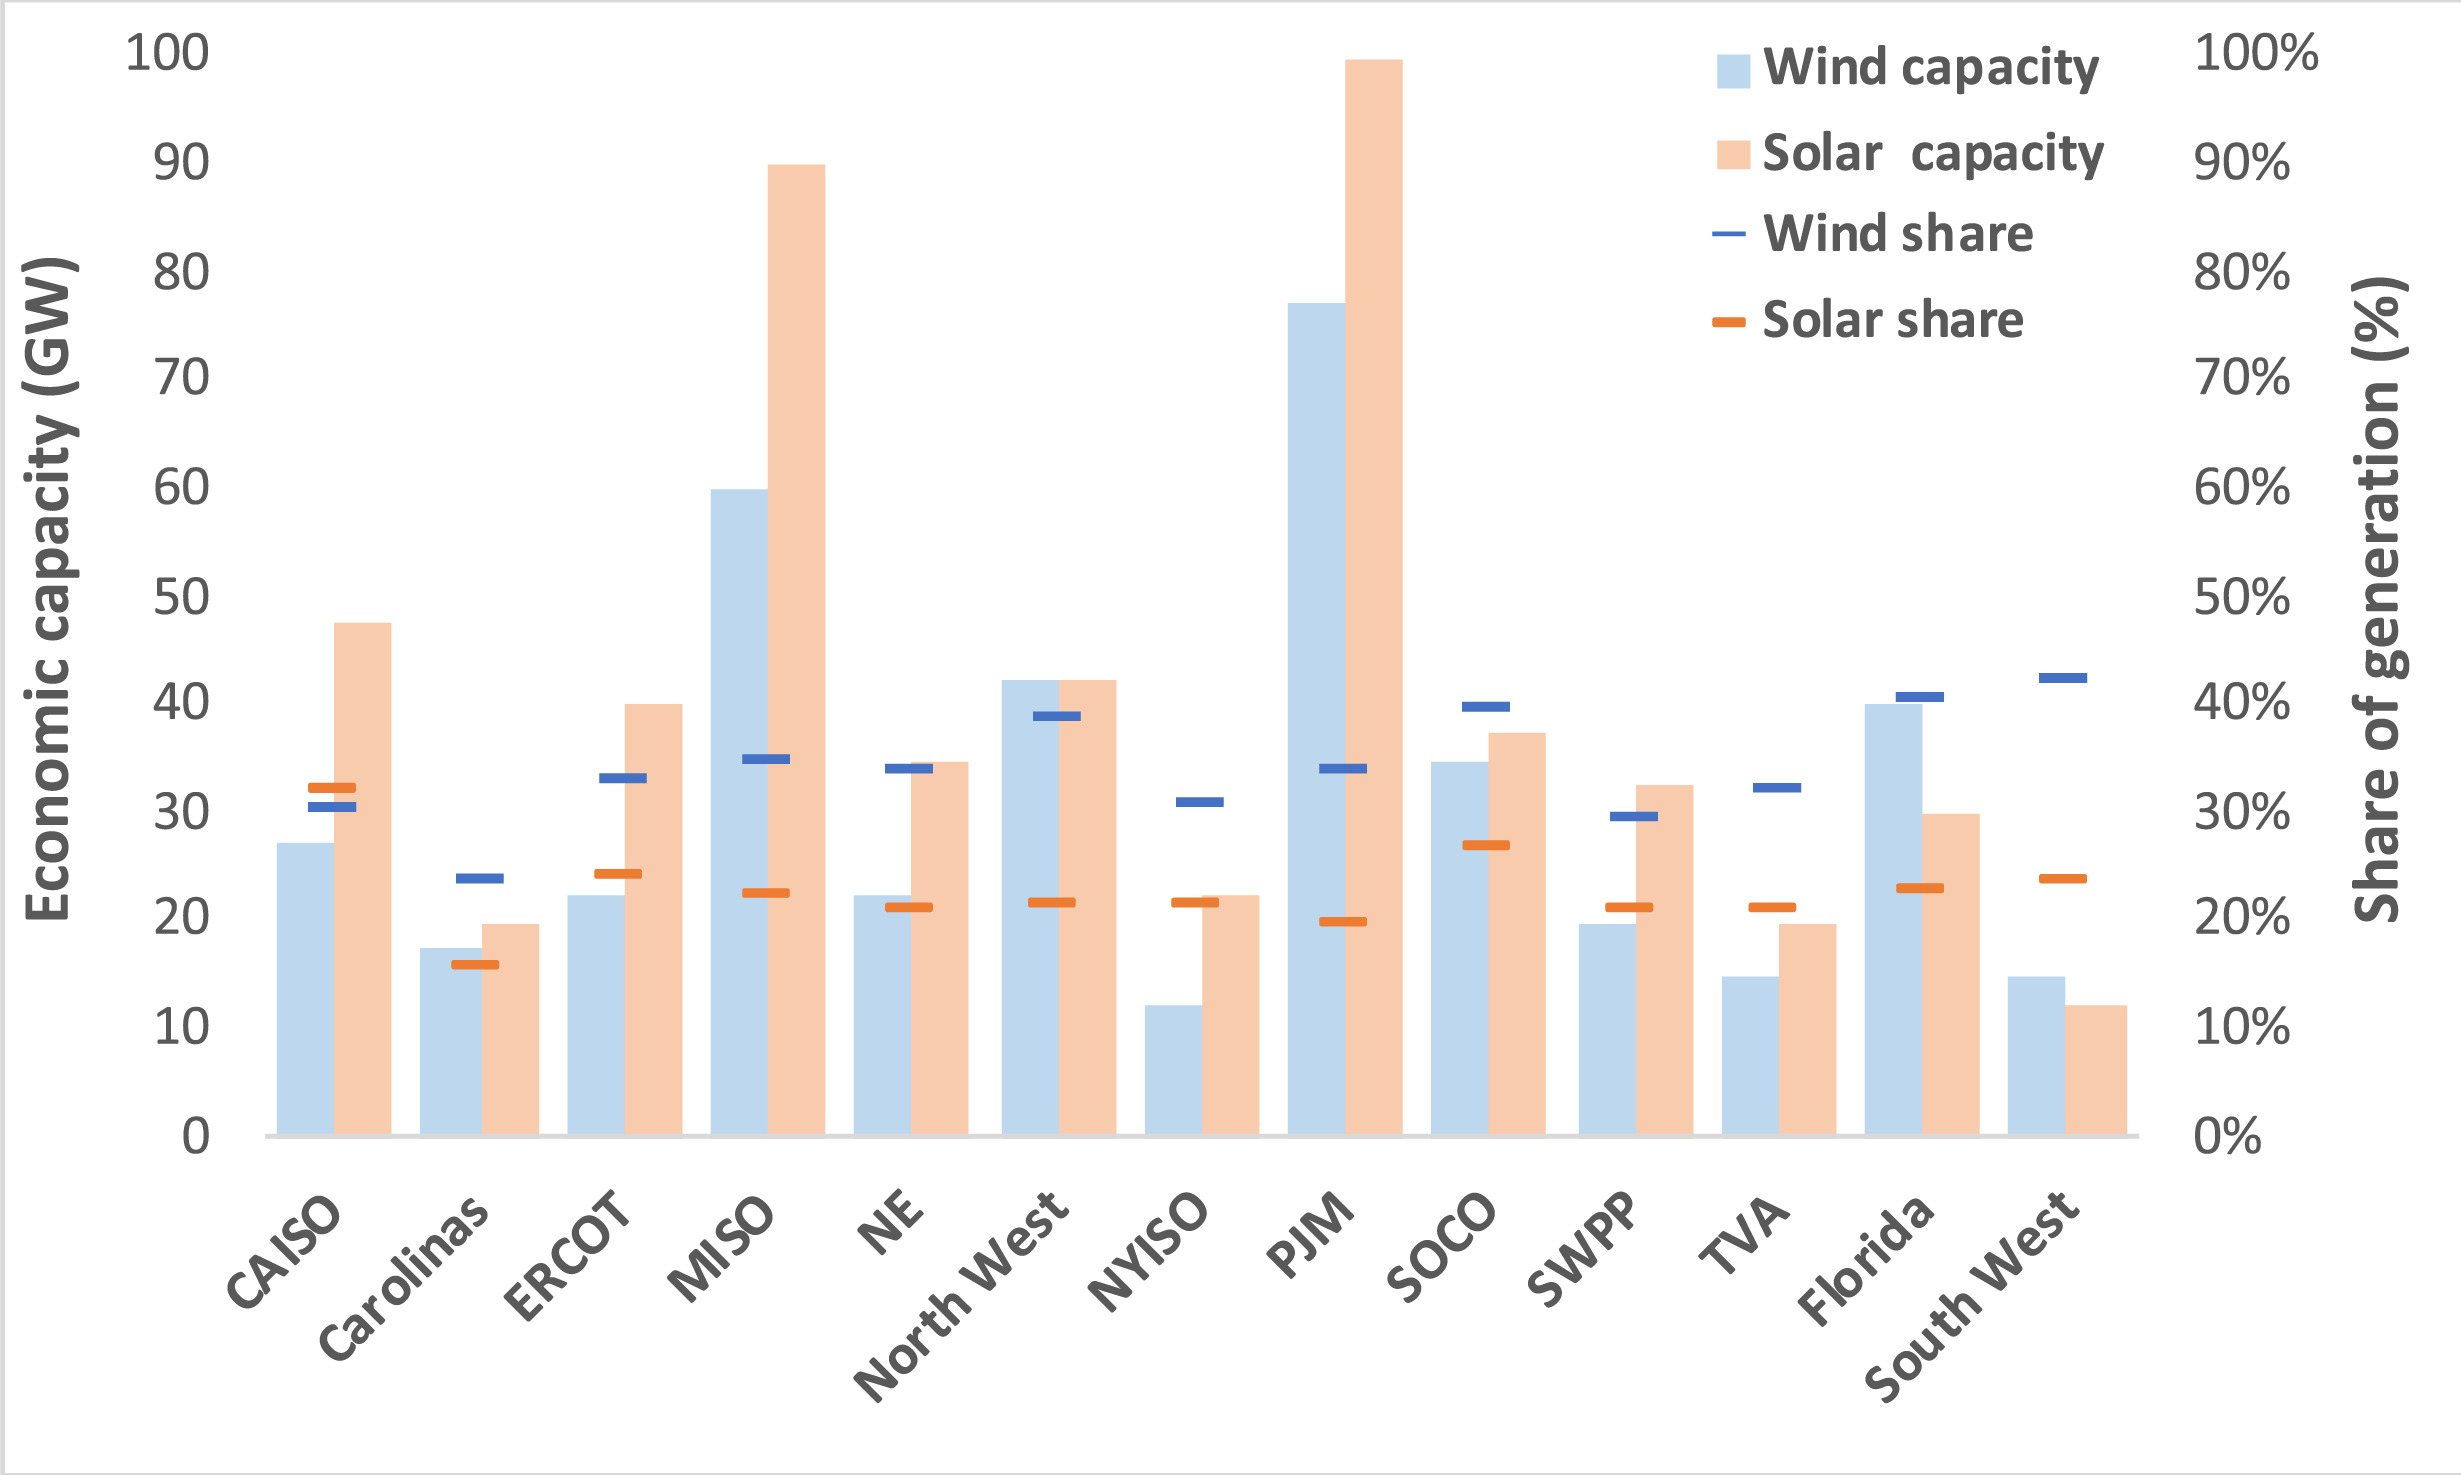 Blog Image: Economic Potential of wind and solar in different regions